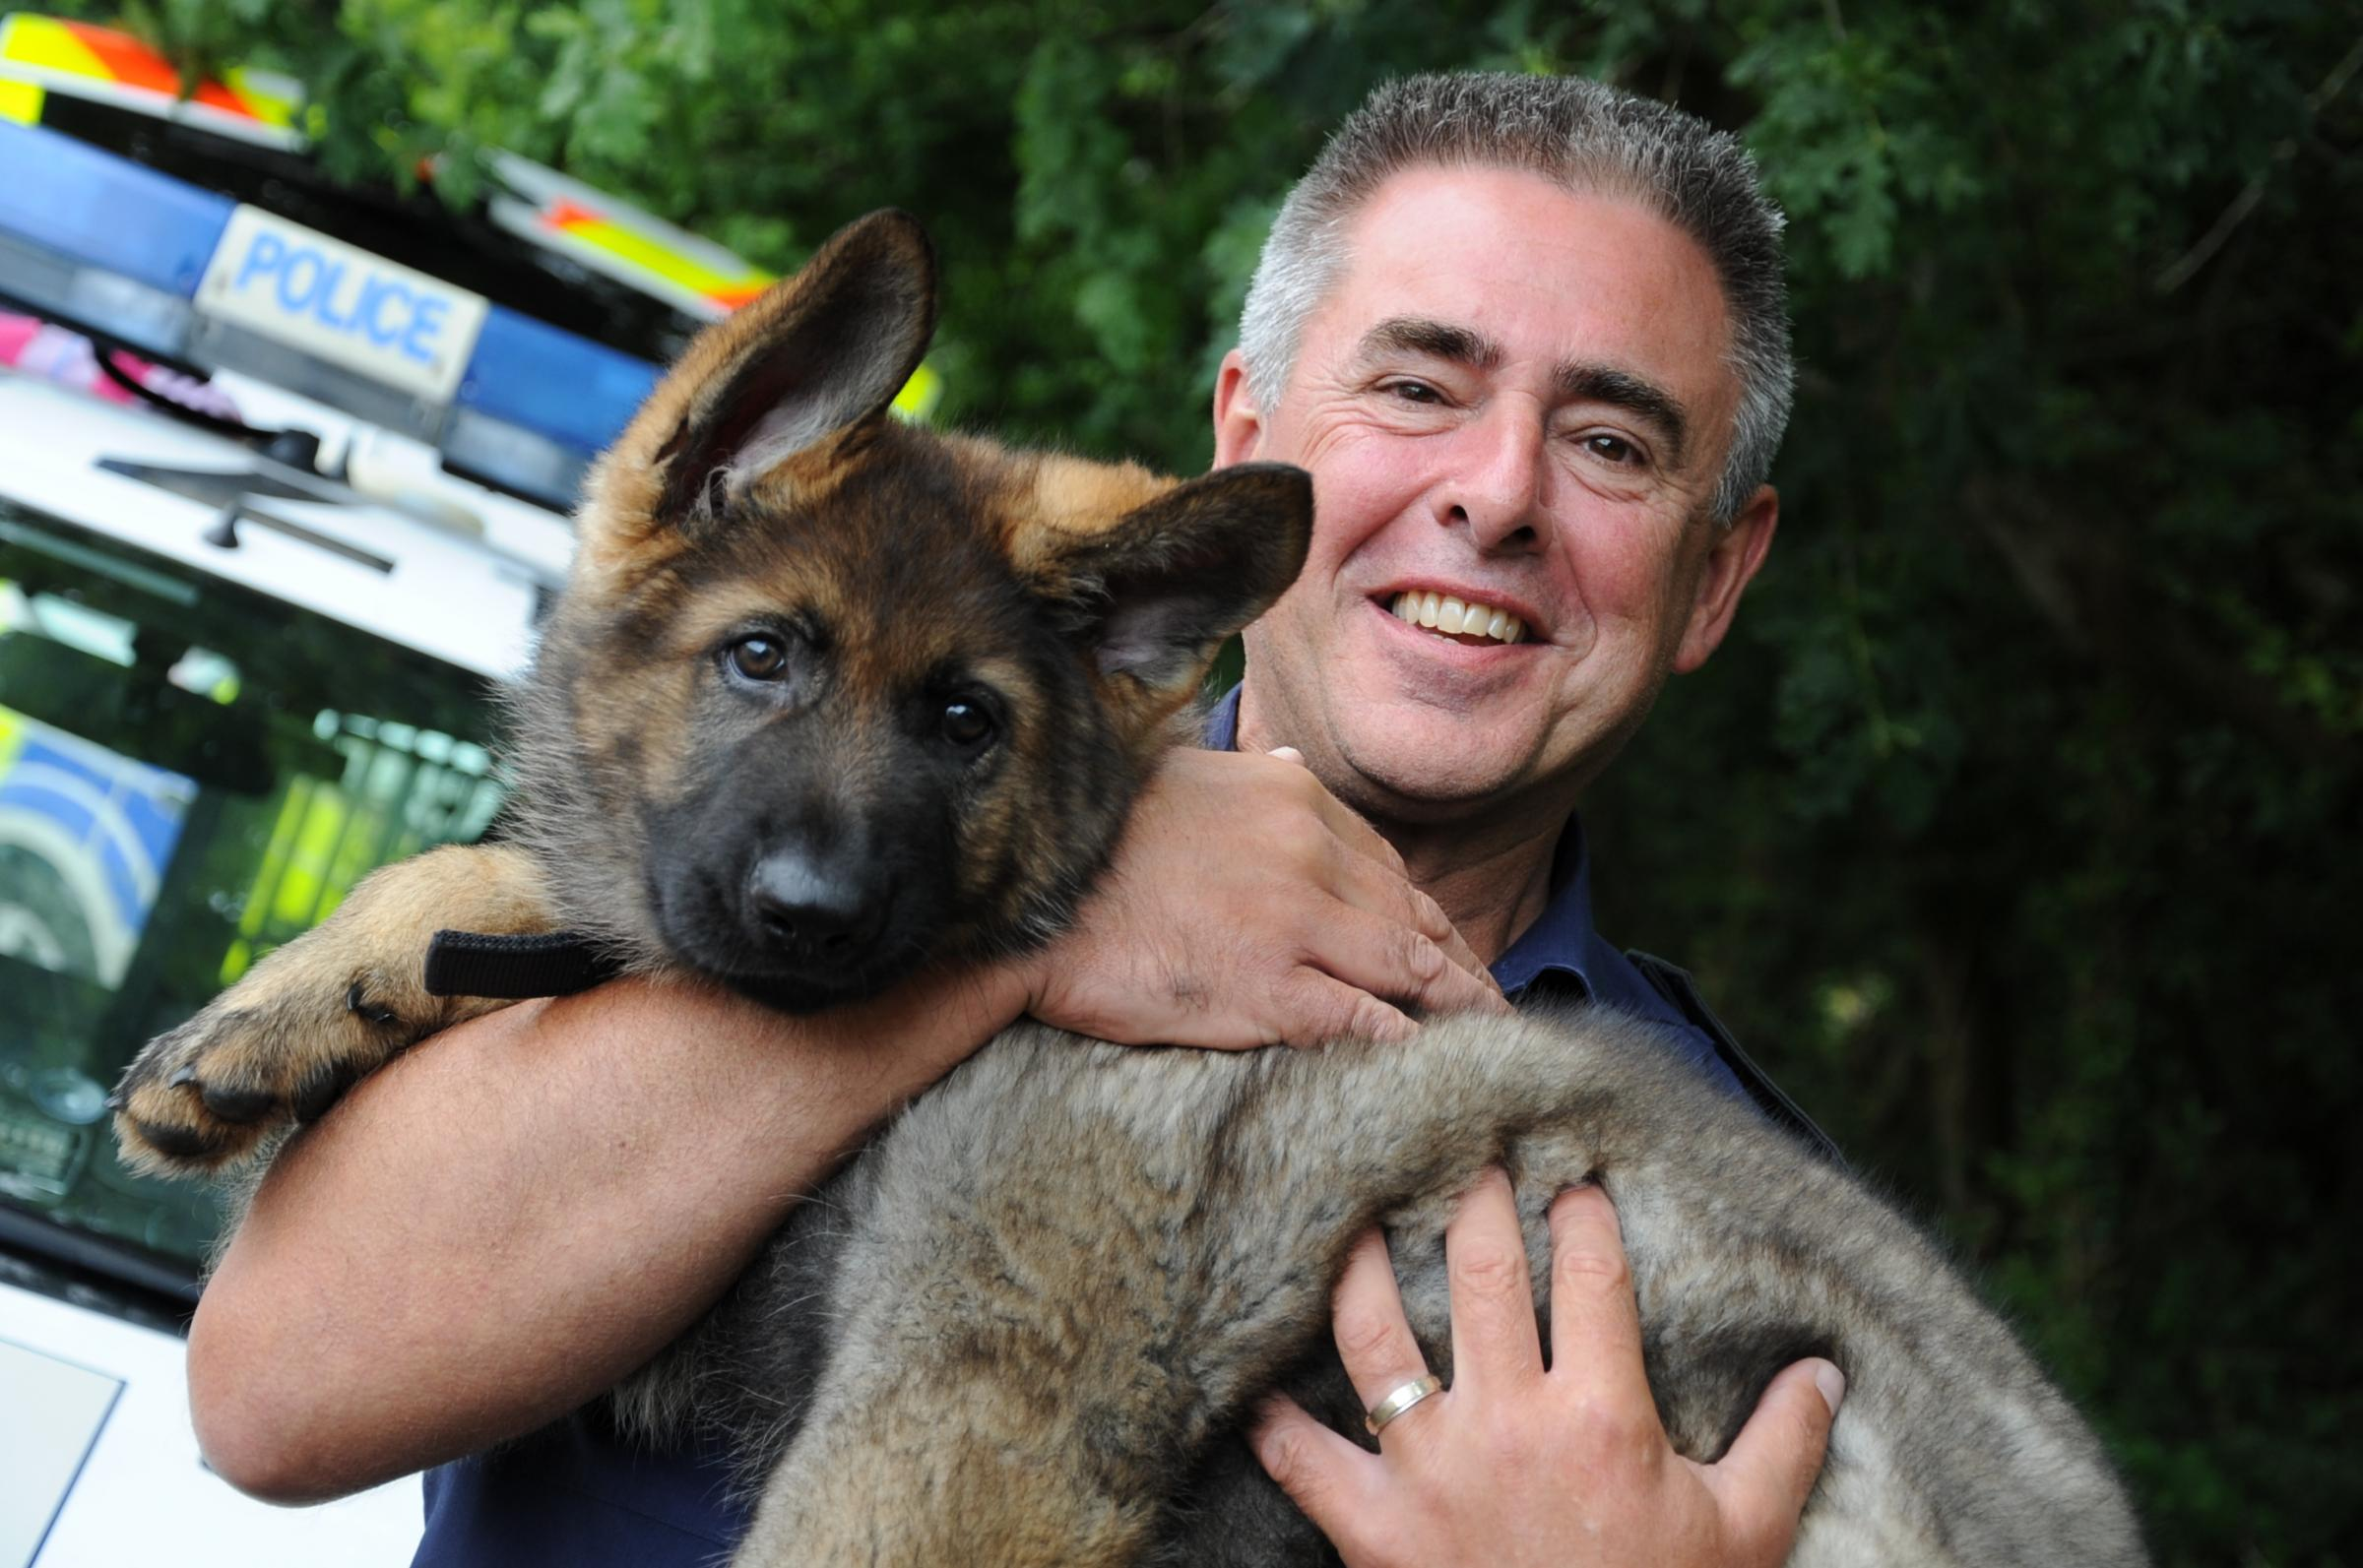 WITH VIDEO: Meet the latest Dorset Police recruit- 10-week-old Gus